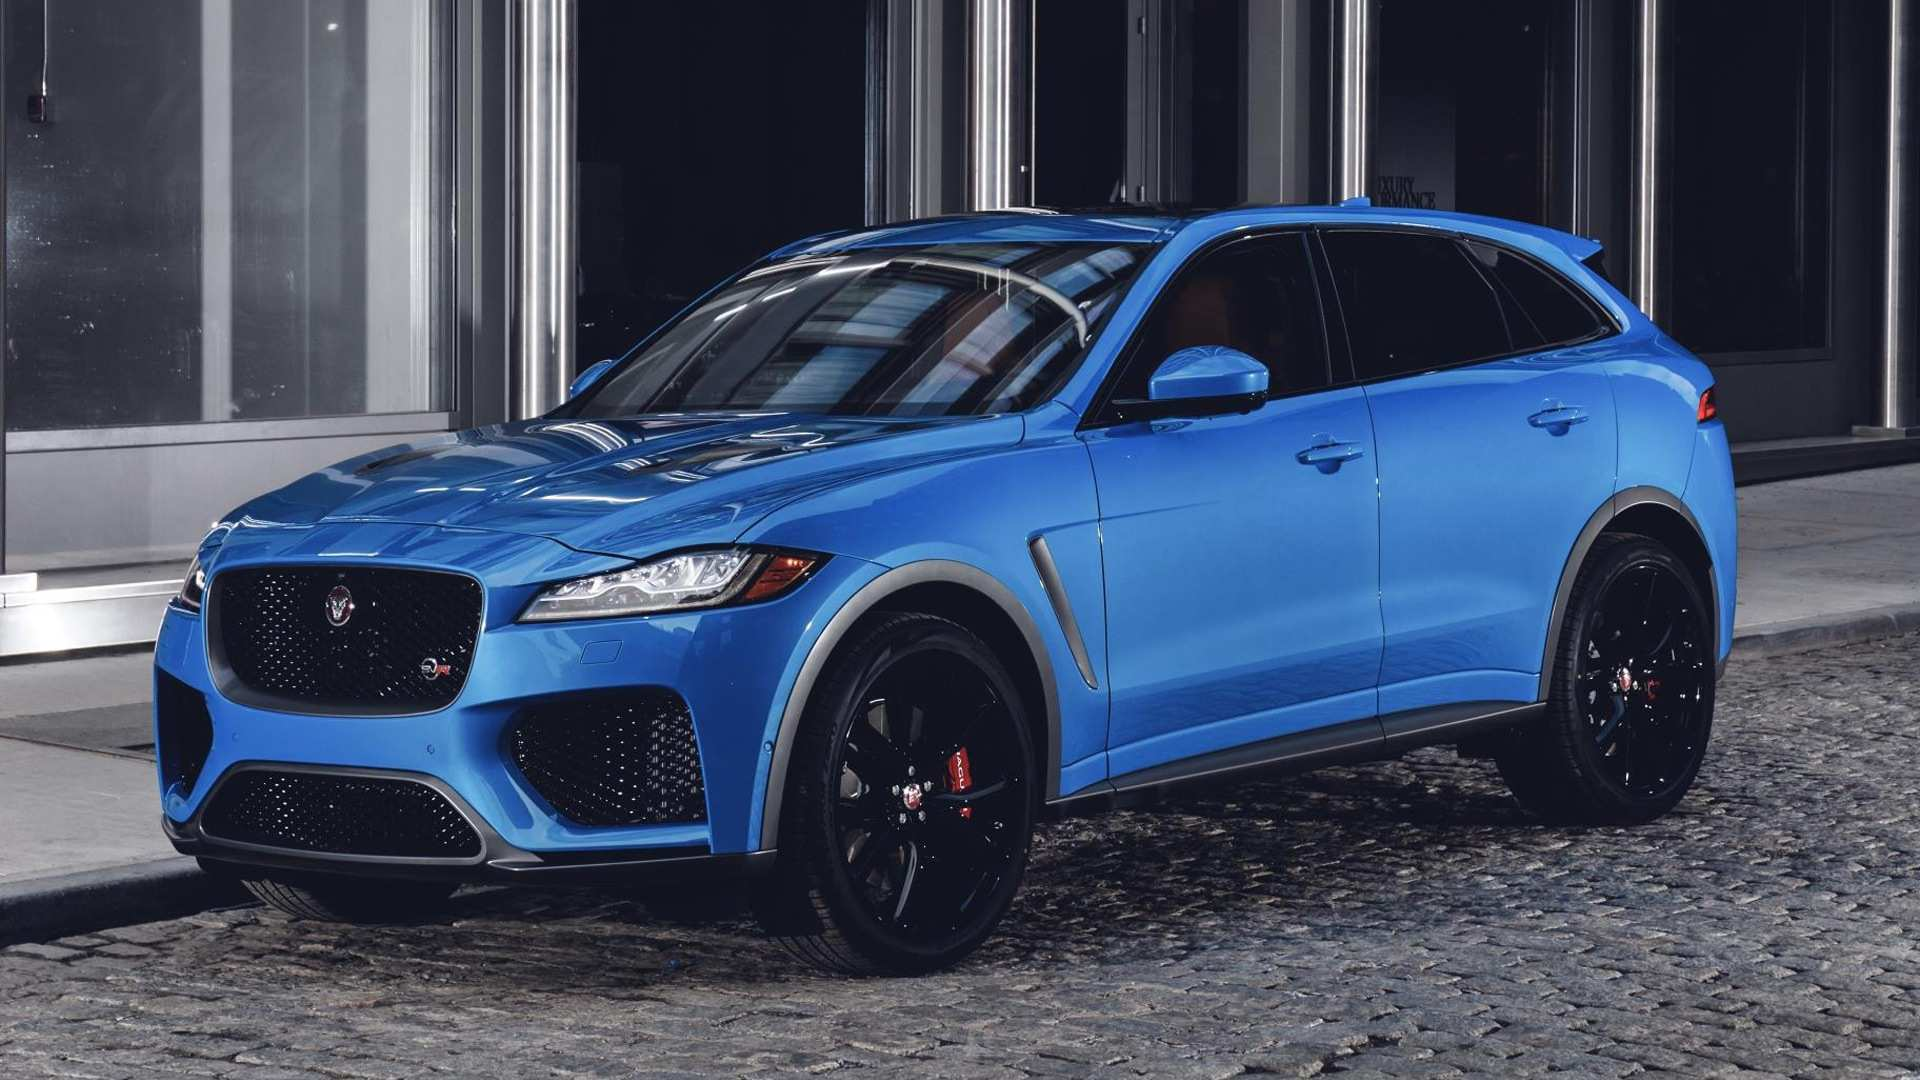 75 All New 2019 Jaguar Pace Rumors for 2019 Jaguar Pace